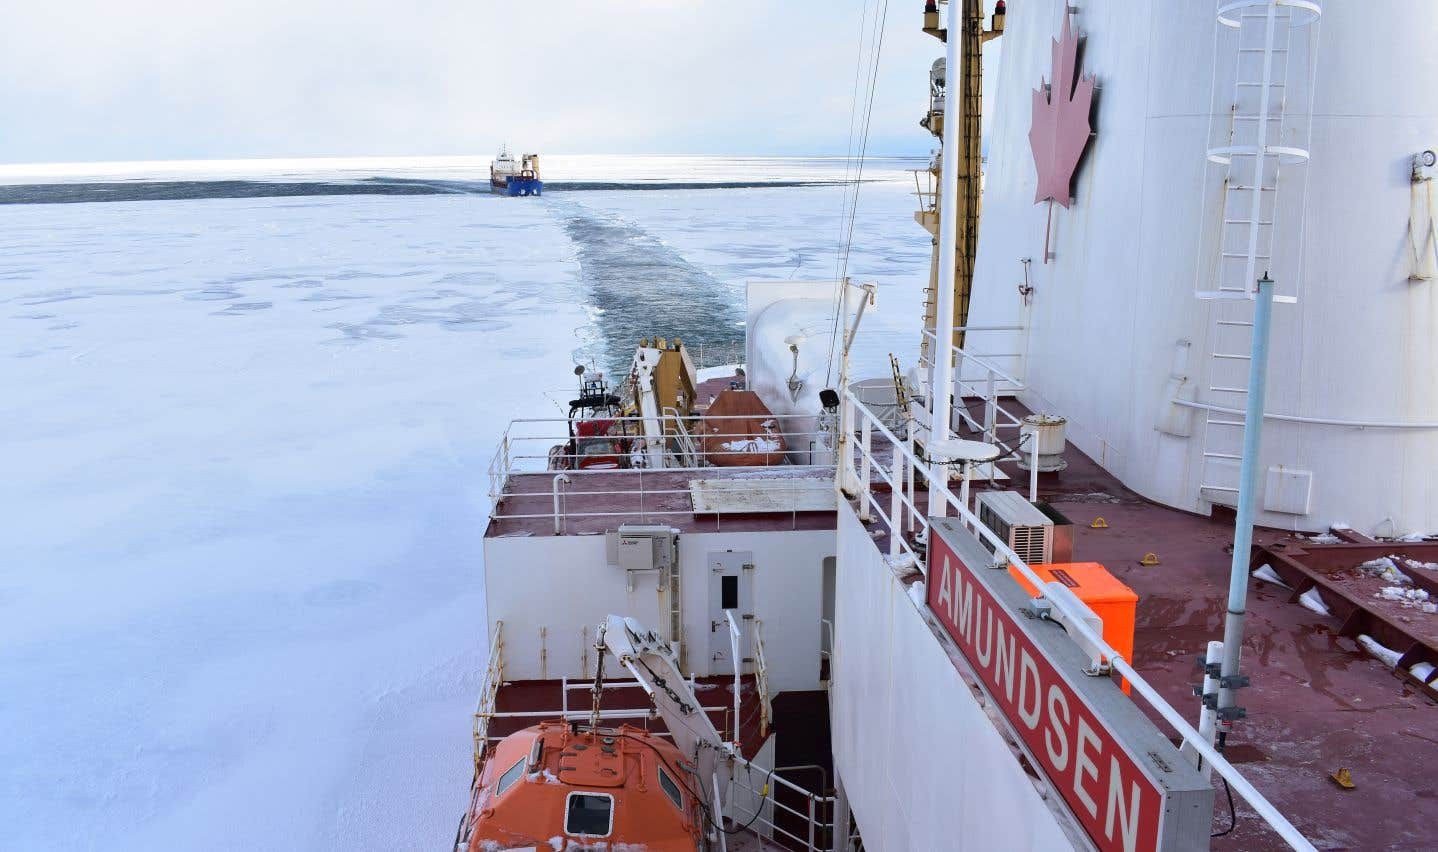 En plus de la mission scientifique, l'Amundsen doit poursuivre l'escorte de navires.